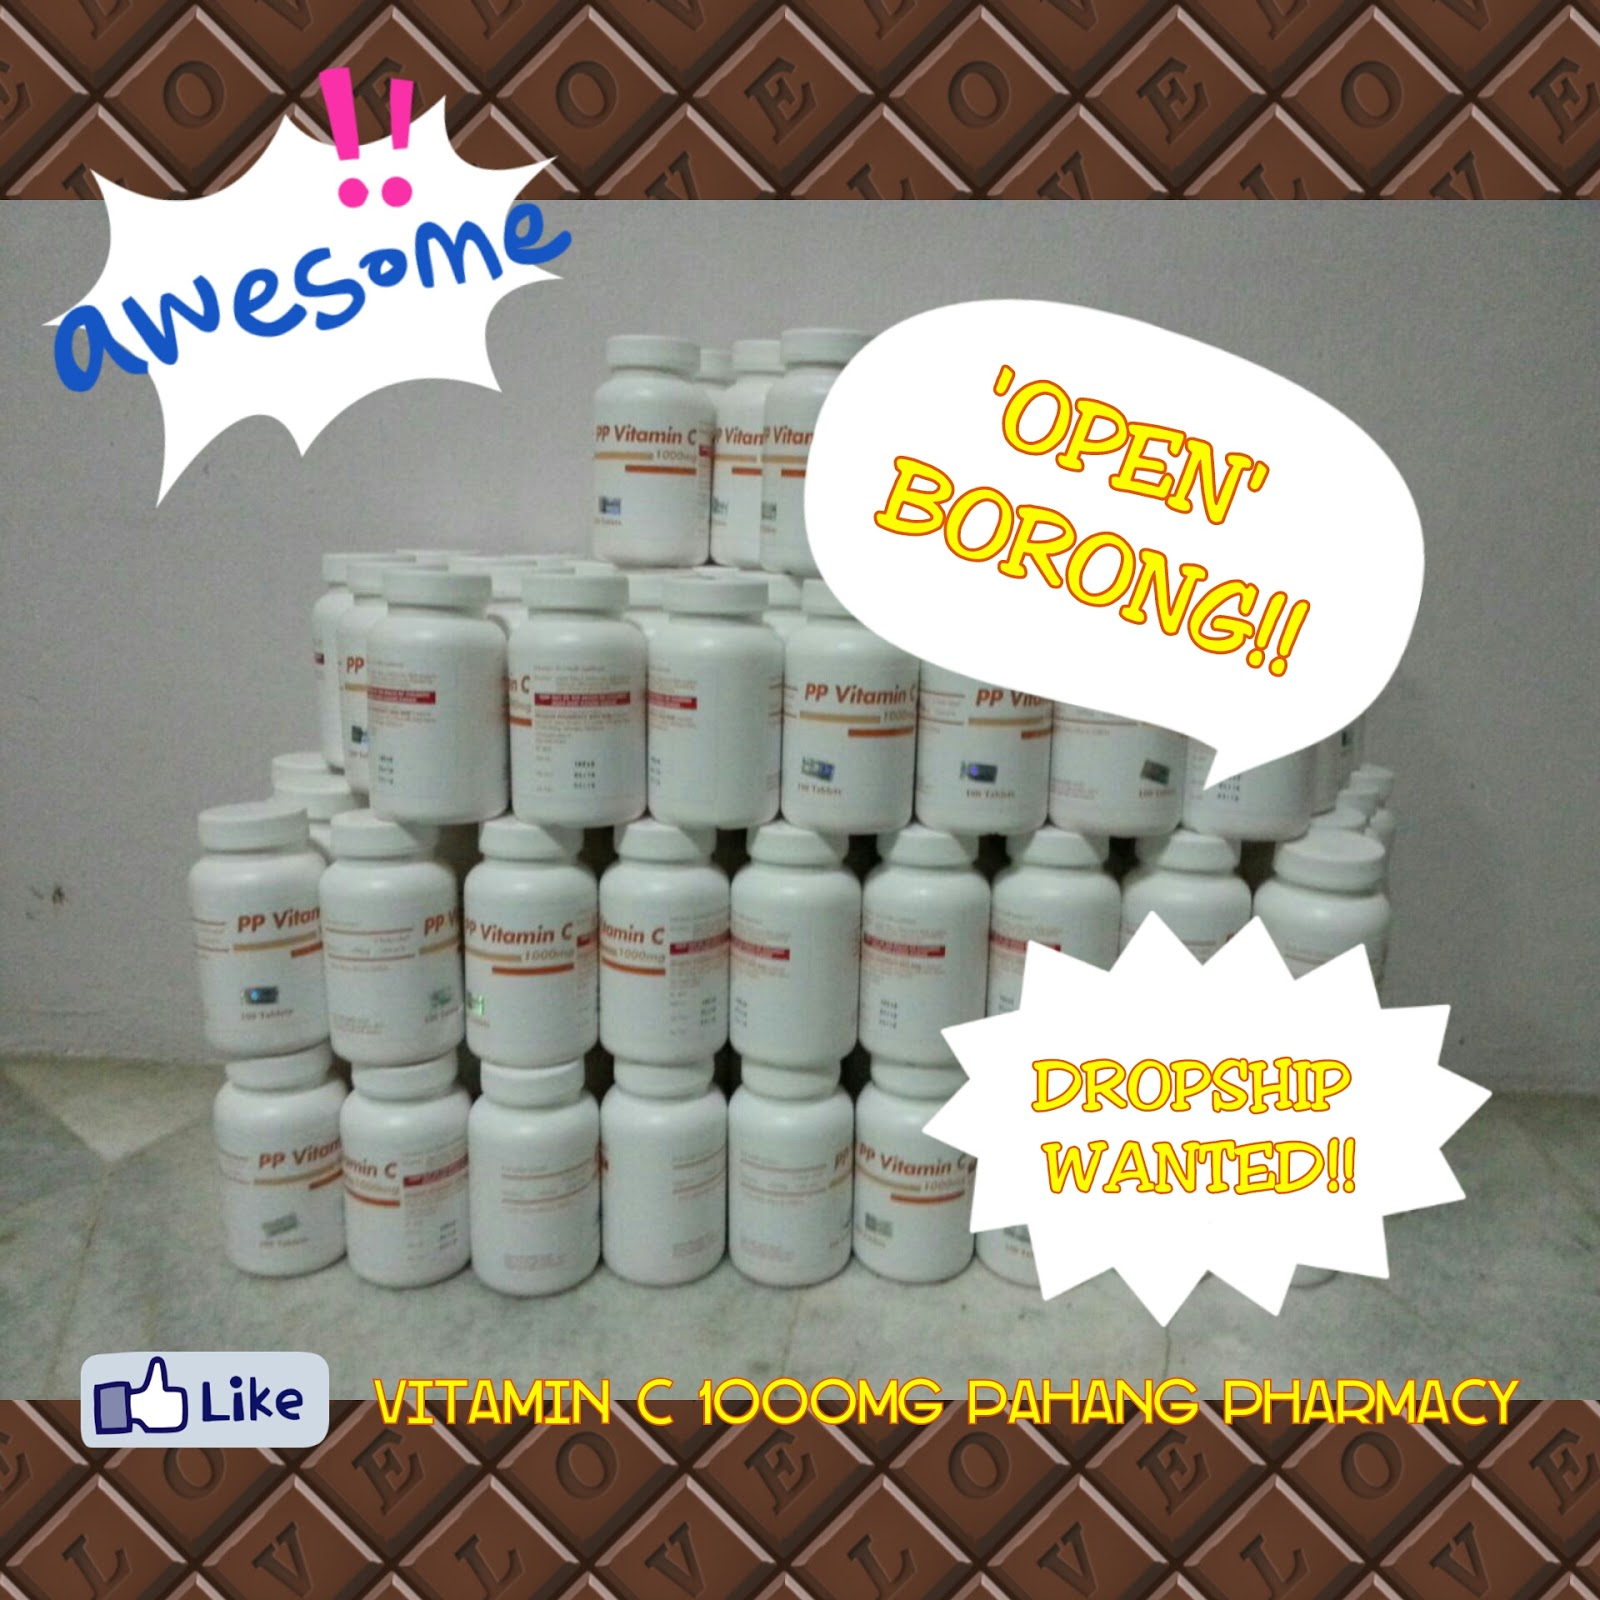 mazim outlet borong vitamin c 1000mg pahang pharmacy